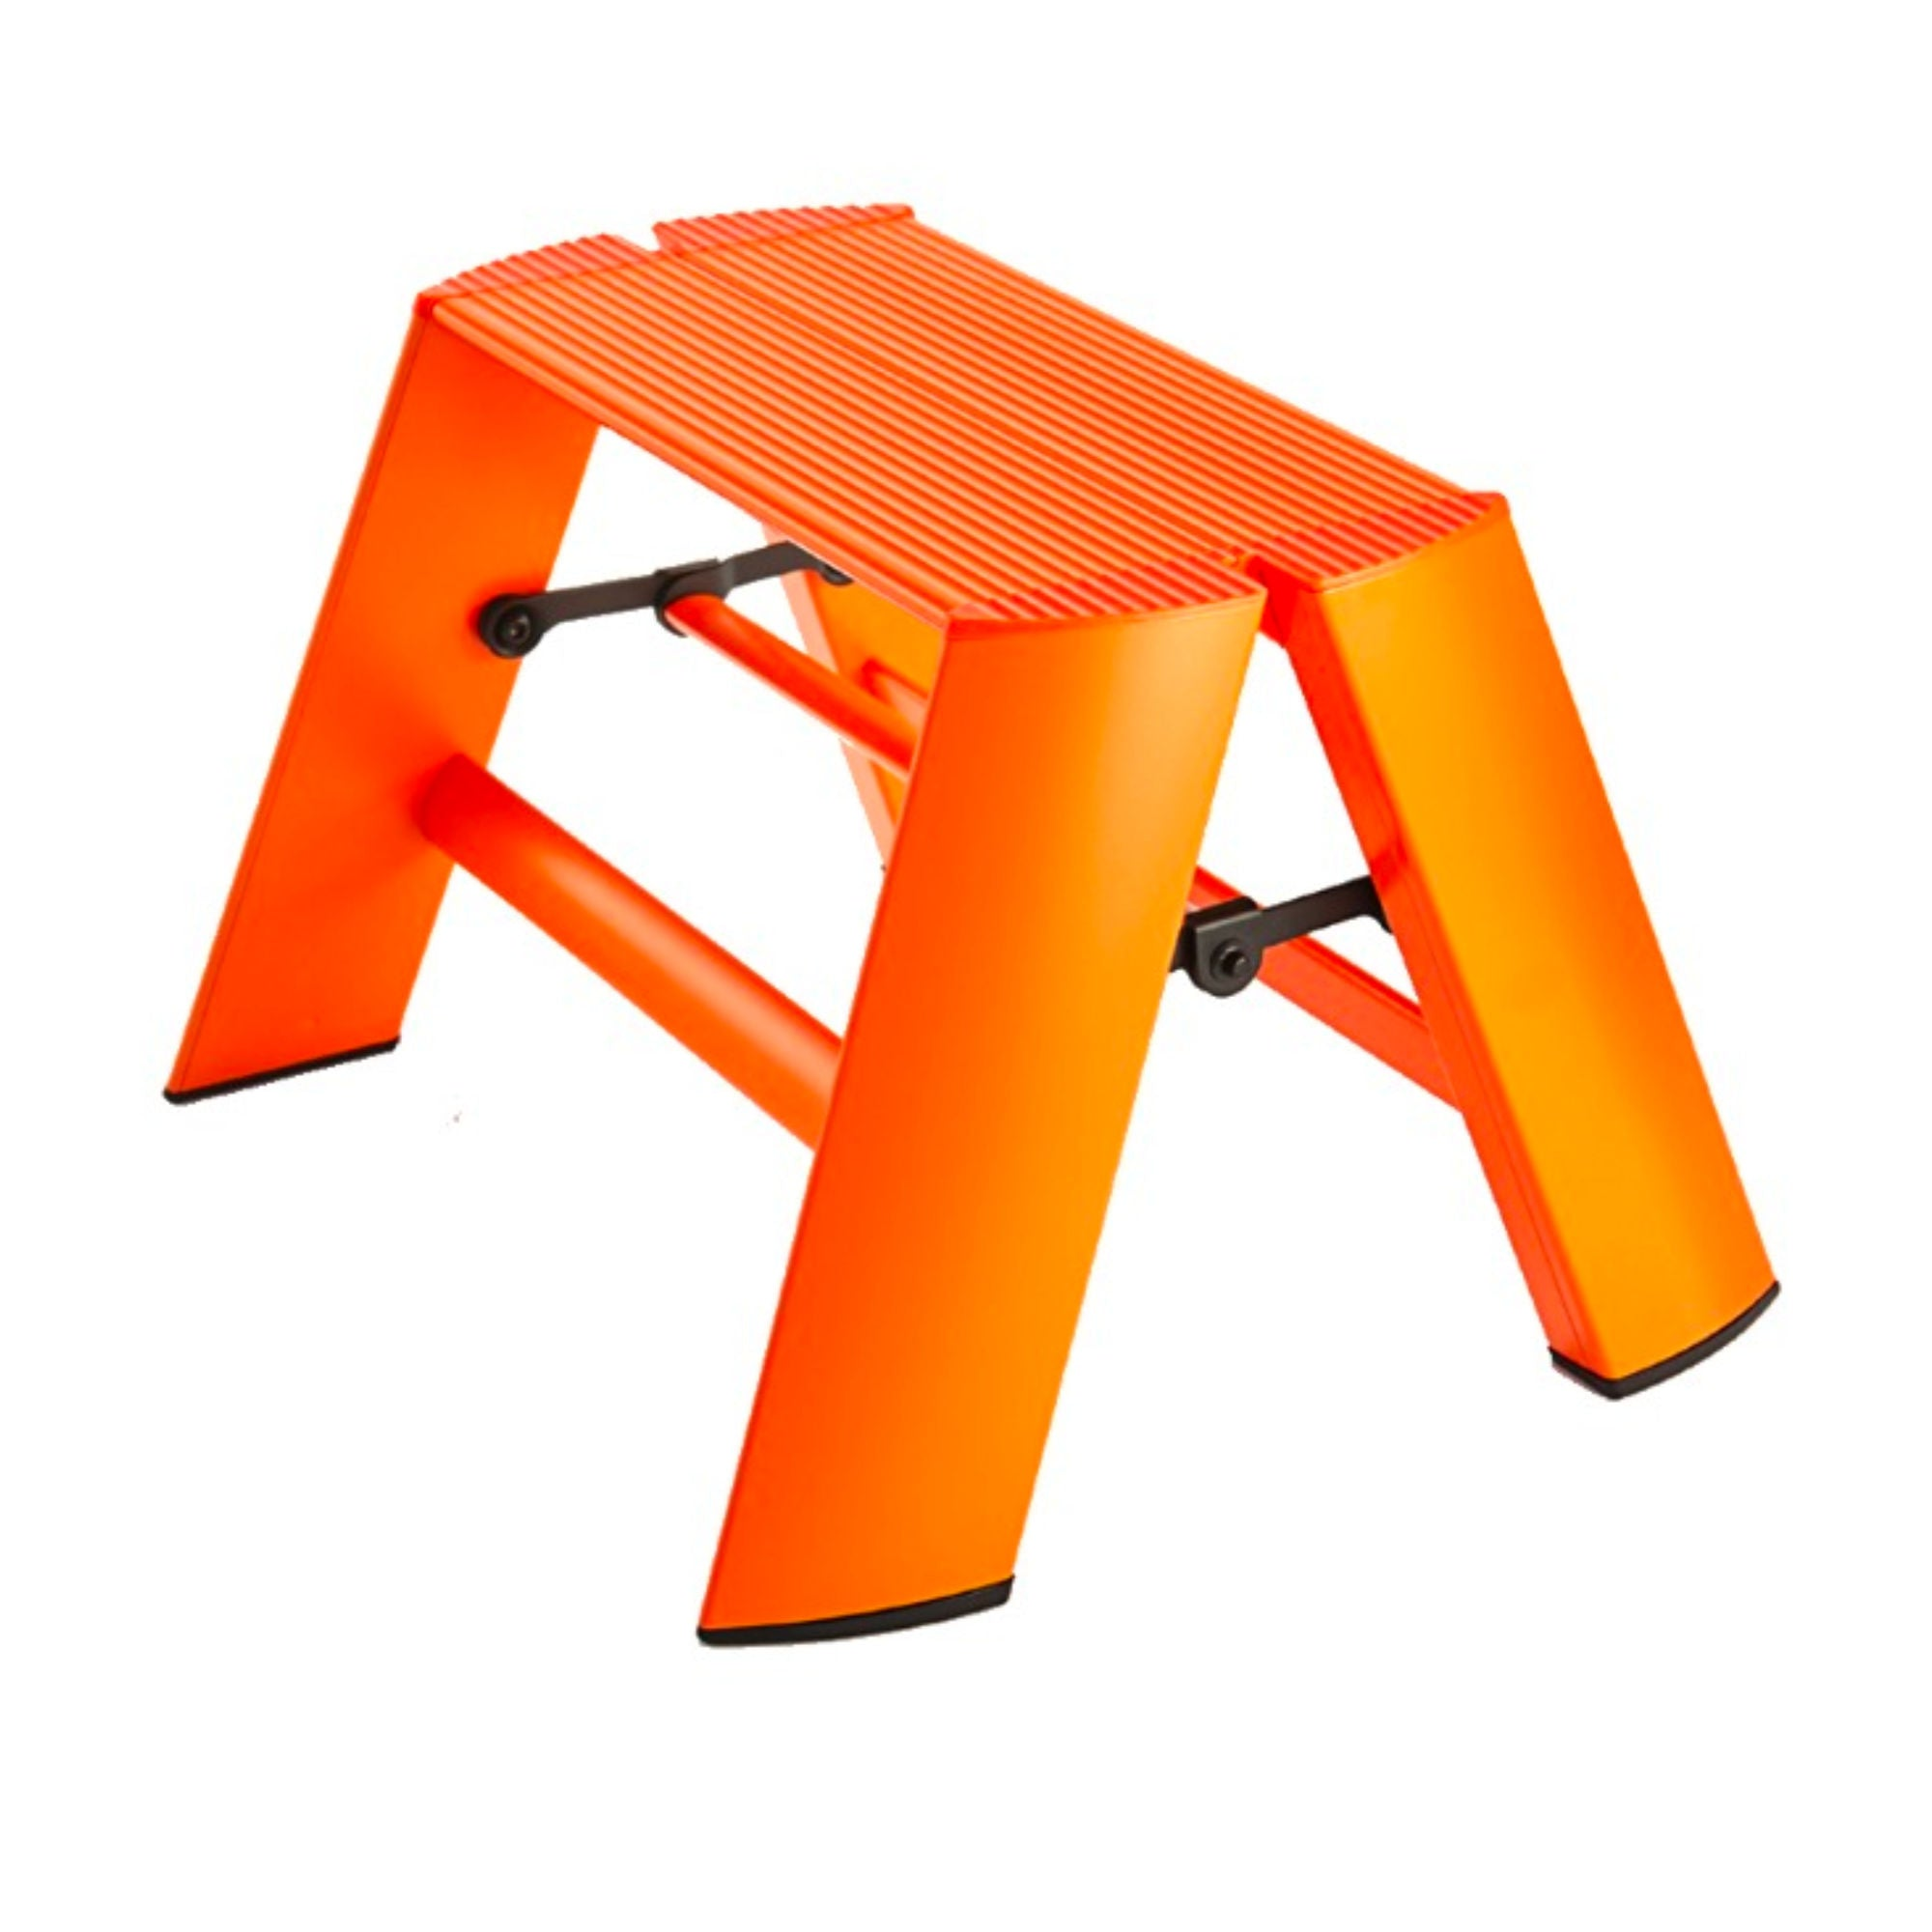 Metaphys Lucano Stool 1-Step , Orange